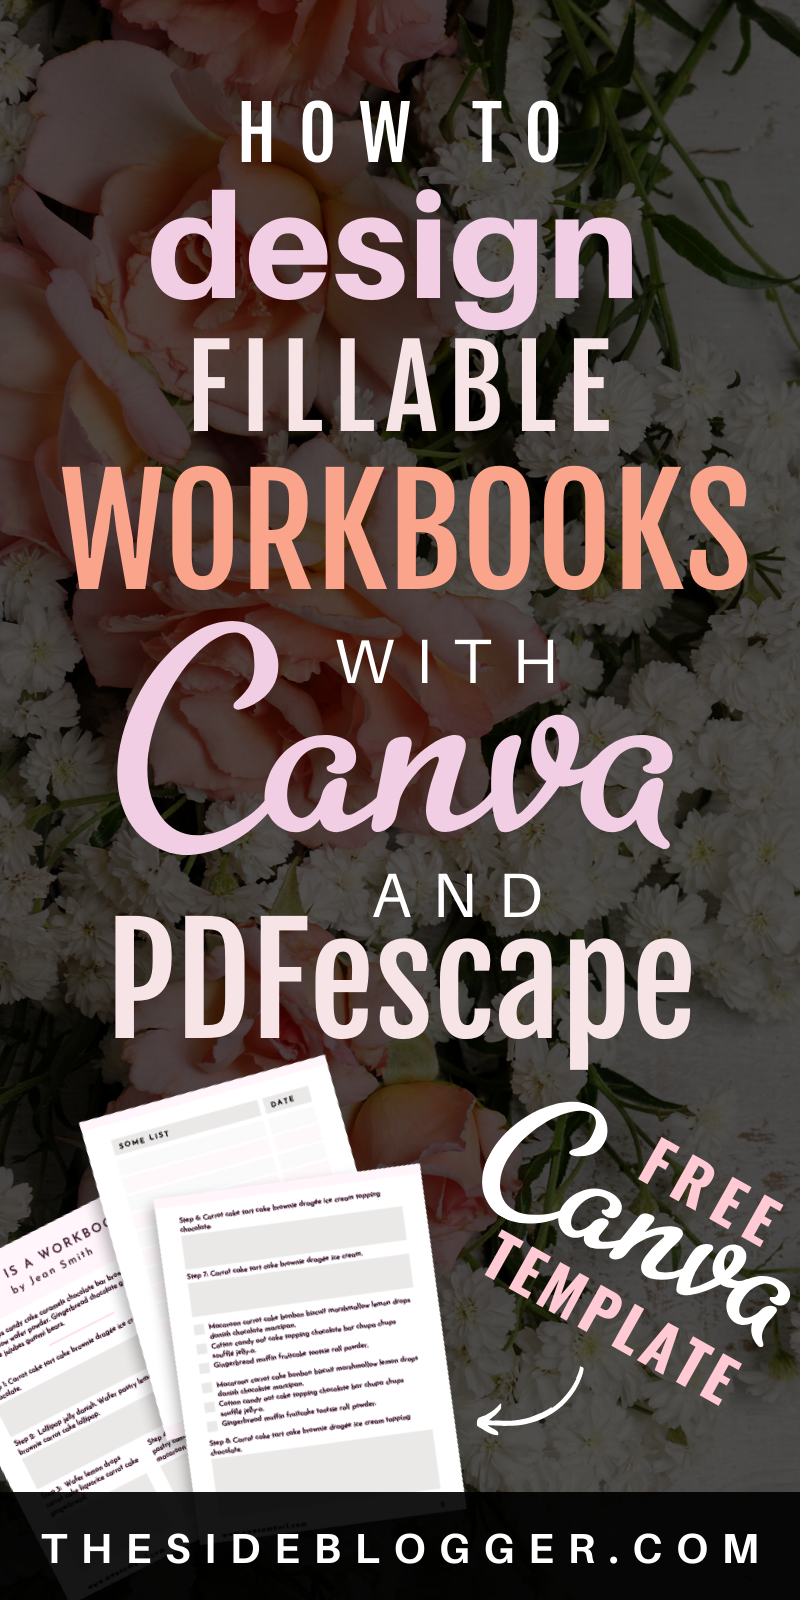 How to Design Fillable PDF Workbooks with Canva and PDFescape - #canva #design #fillable #pdfescape #workbooks - #DesignTips